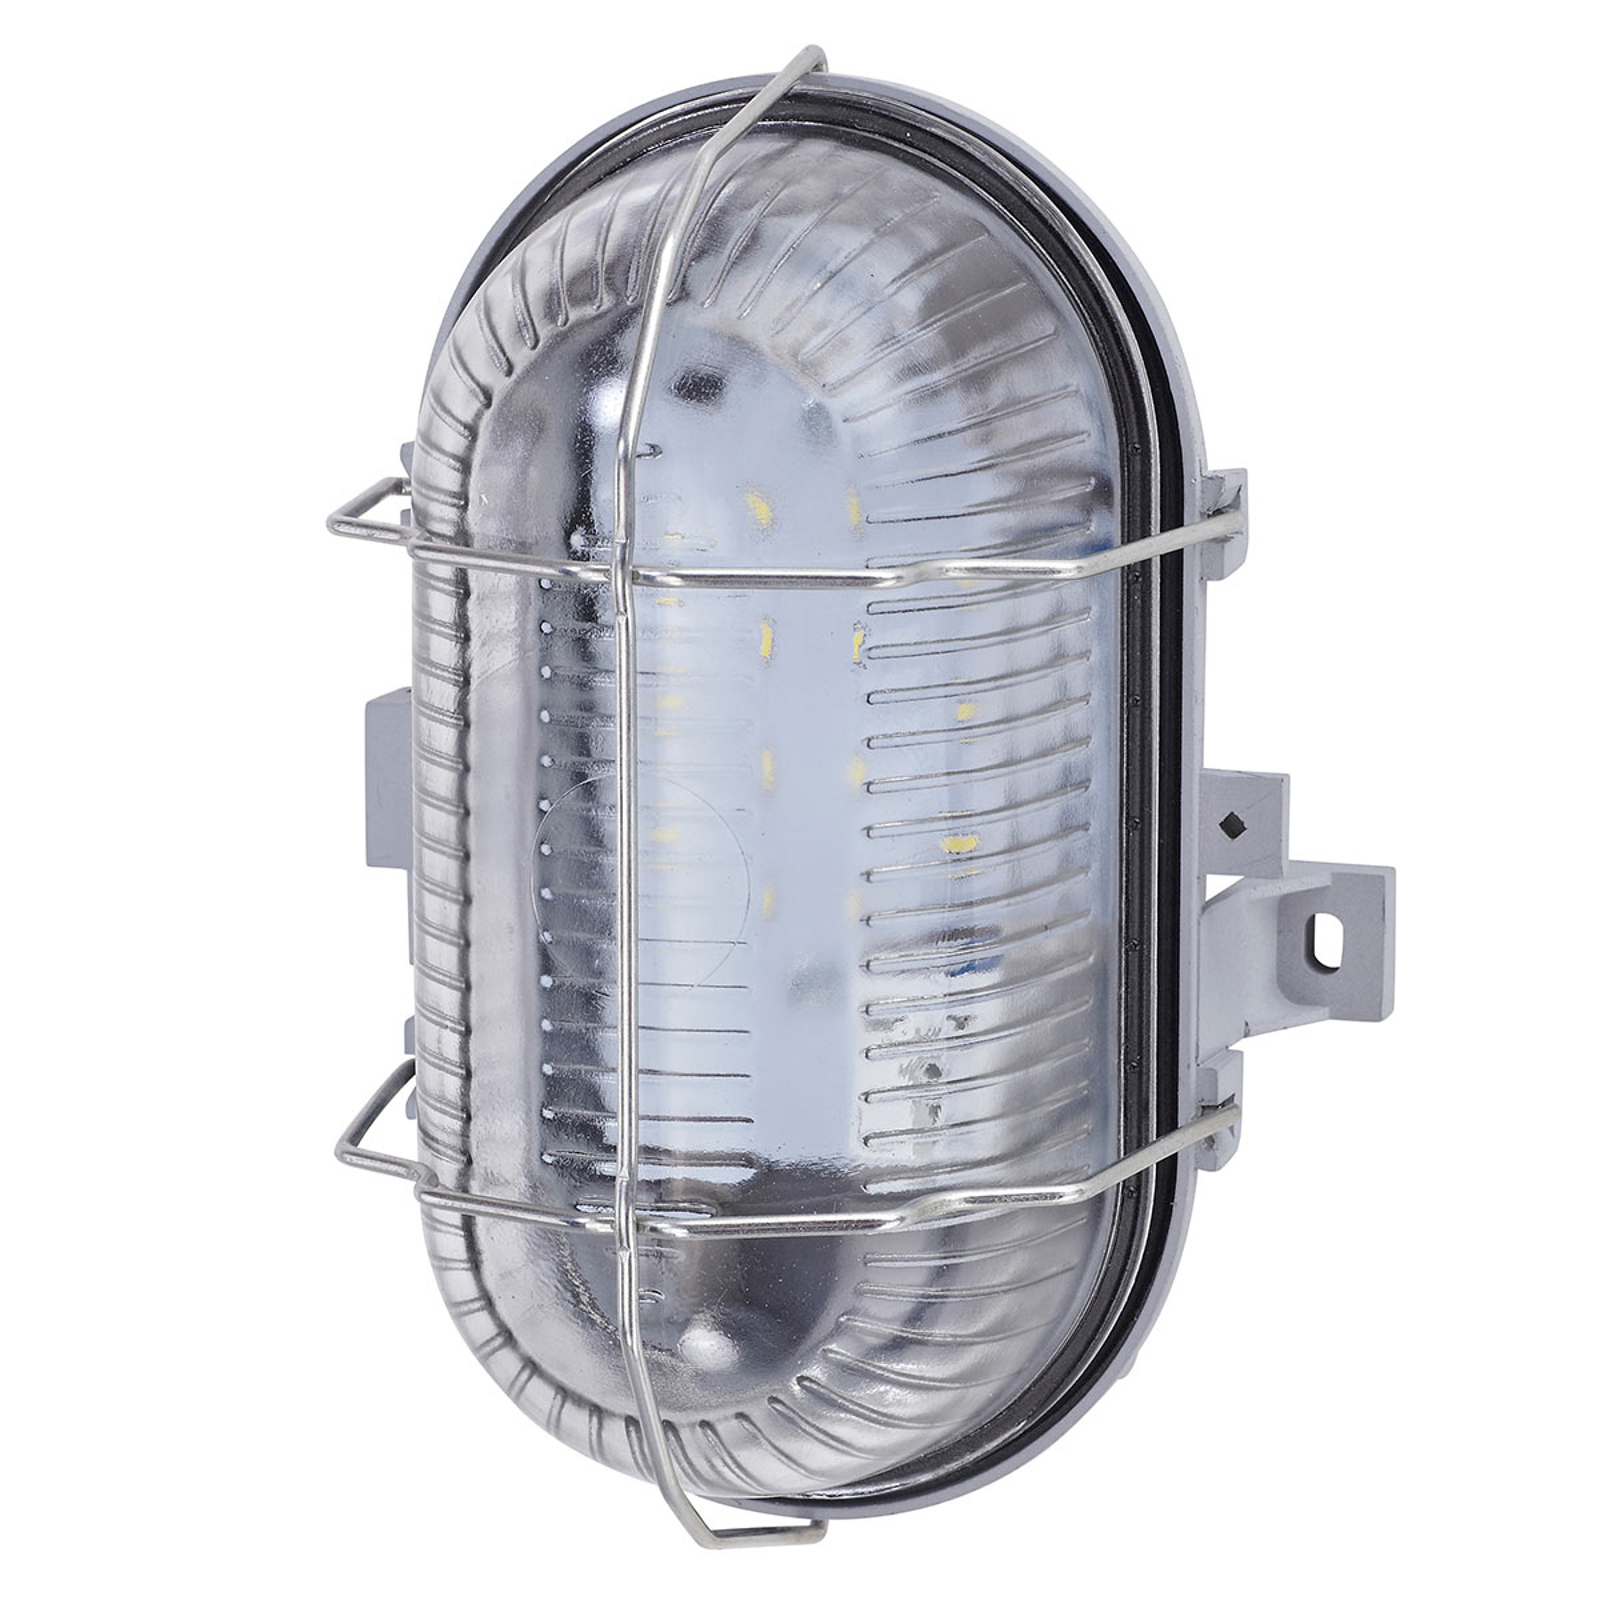 Acquista Applique LED antiurto Pesch 8 IP44